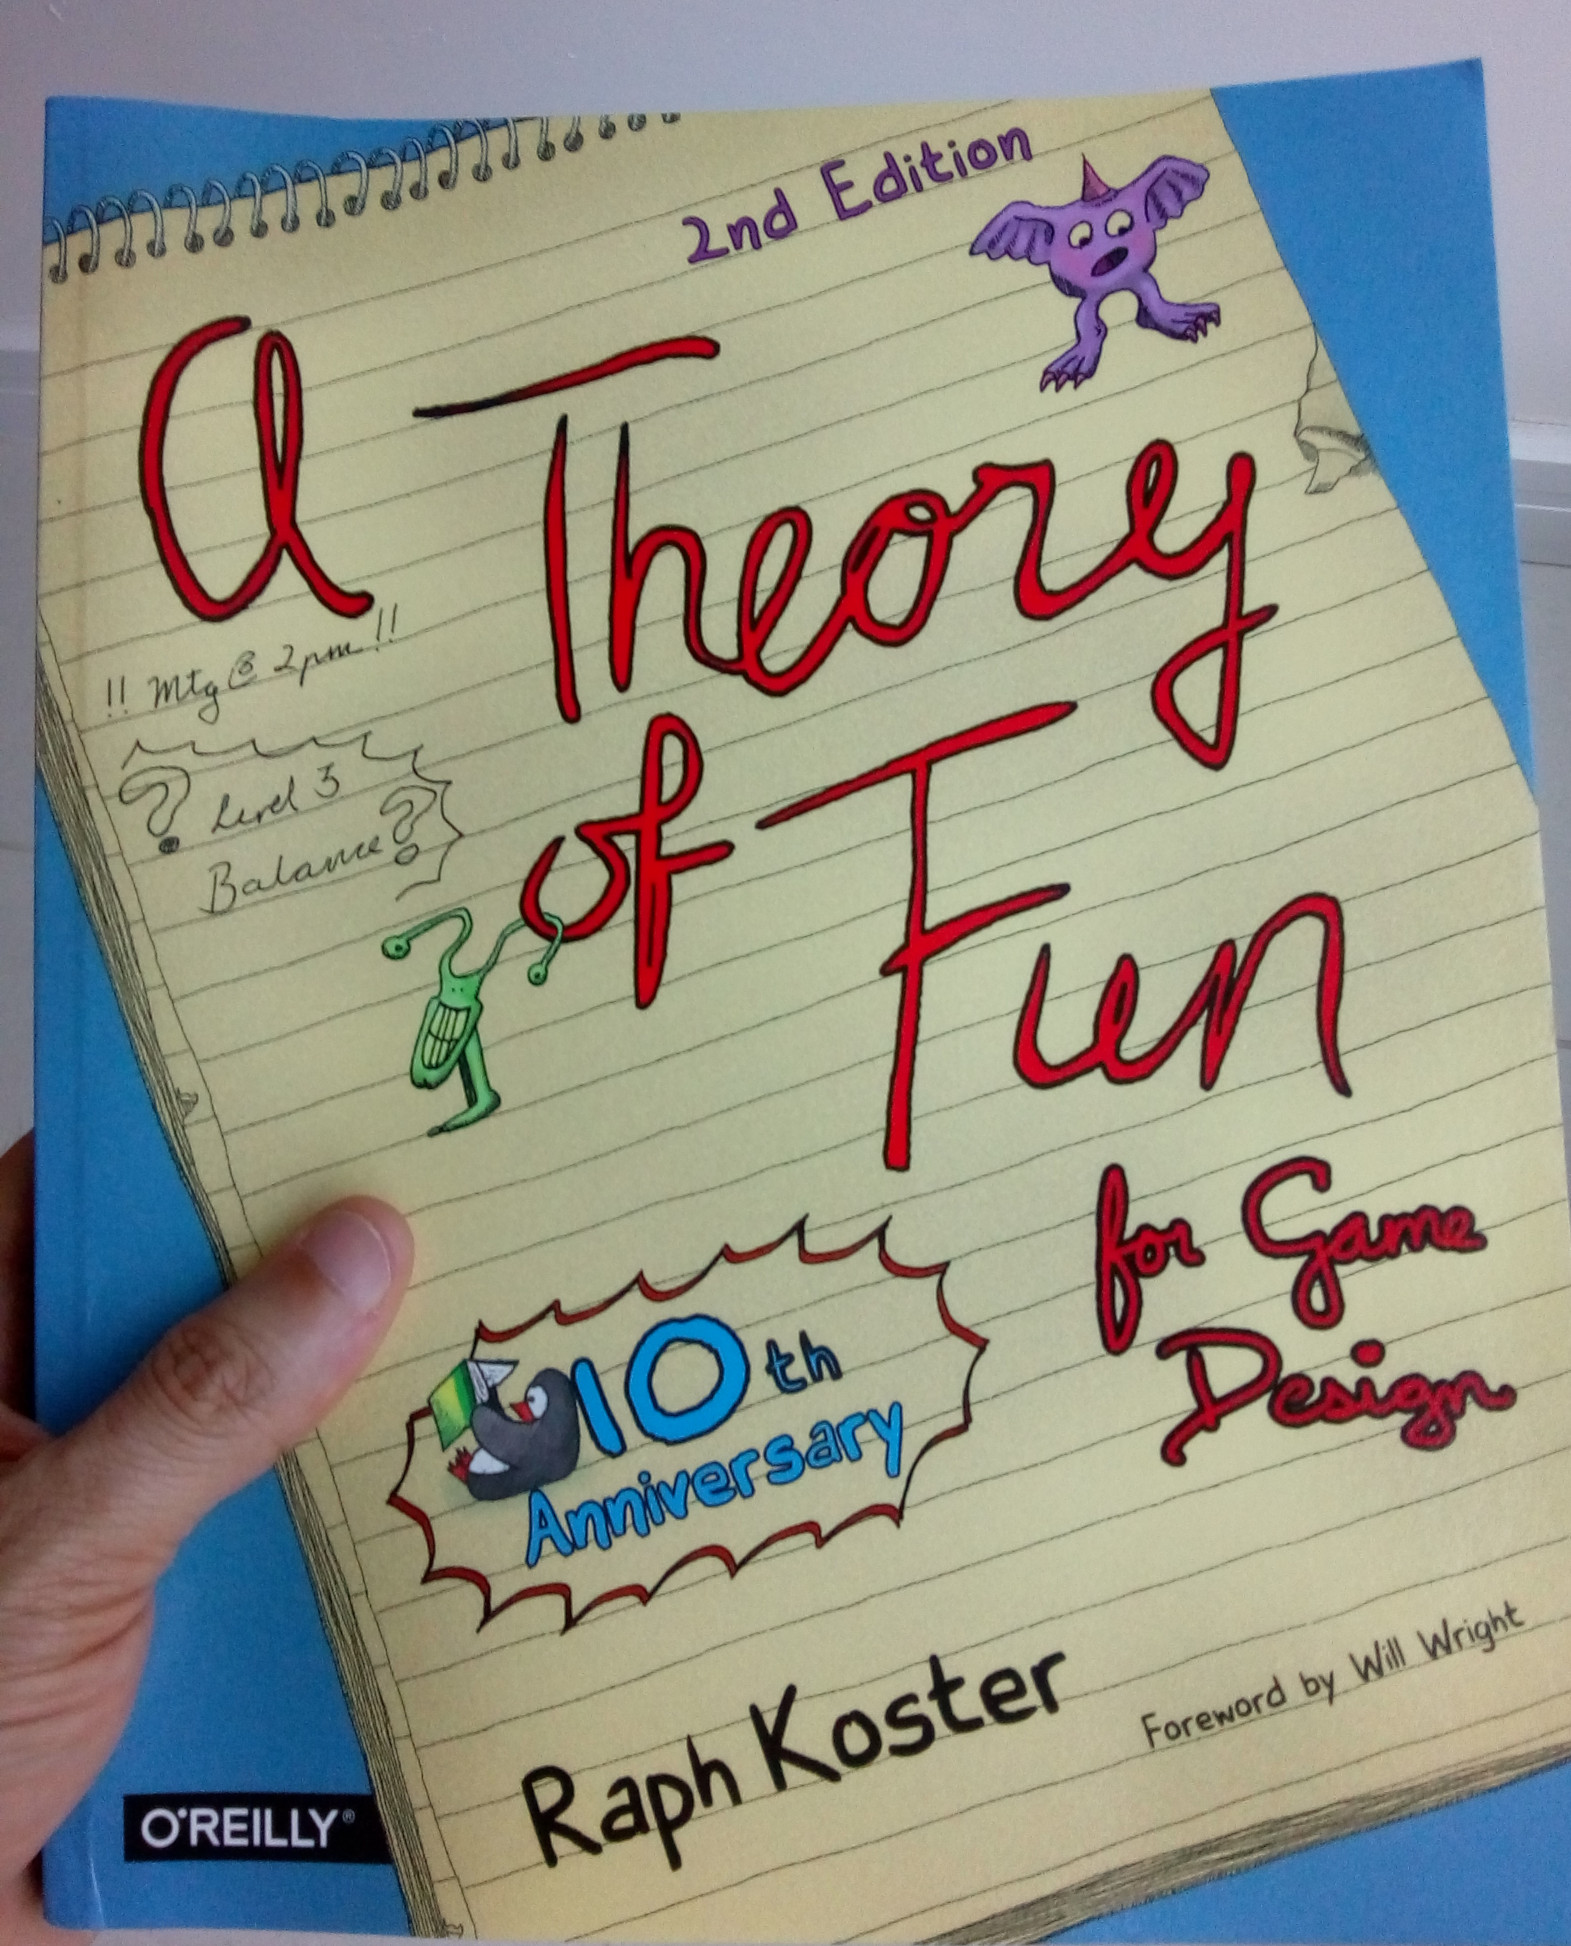 Book 'A Theory of Fun for Game Design', by Raph Koster.